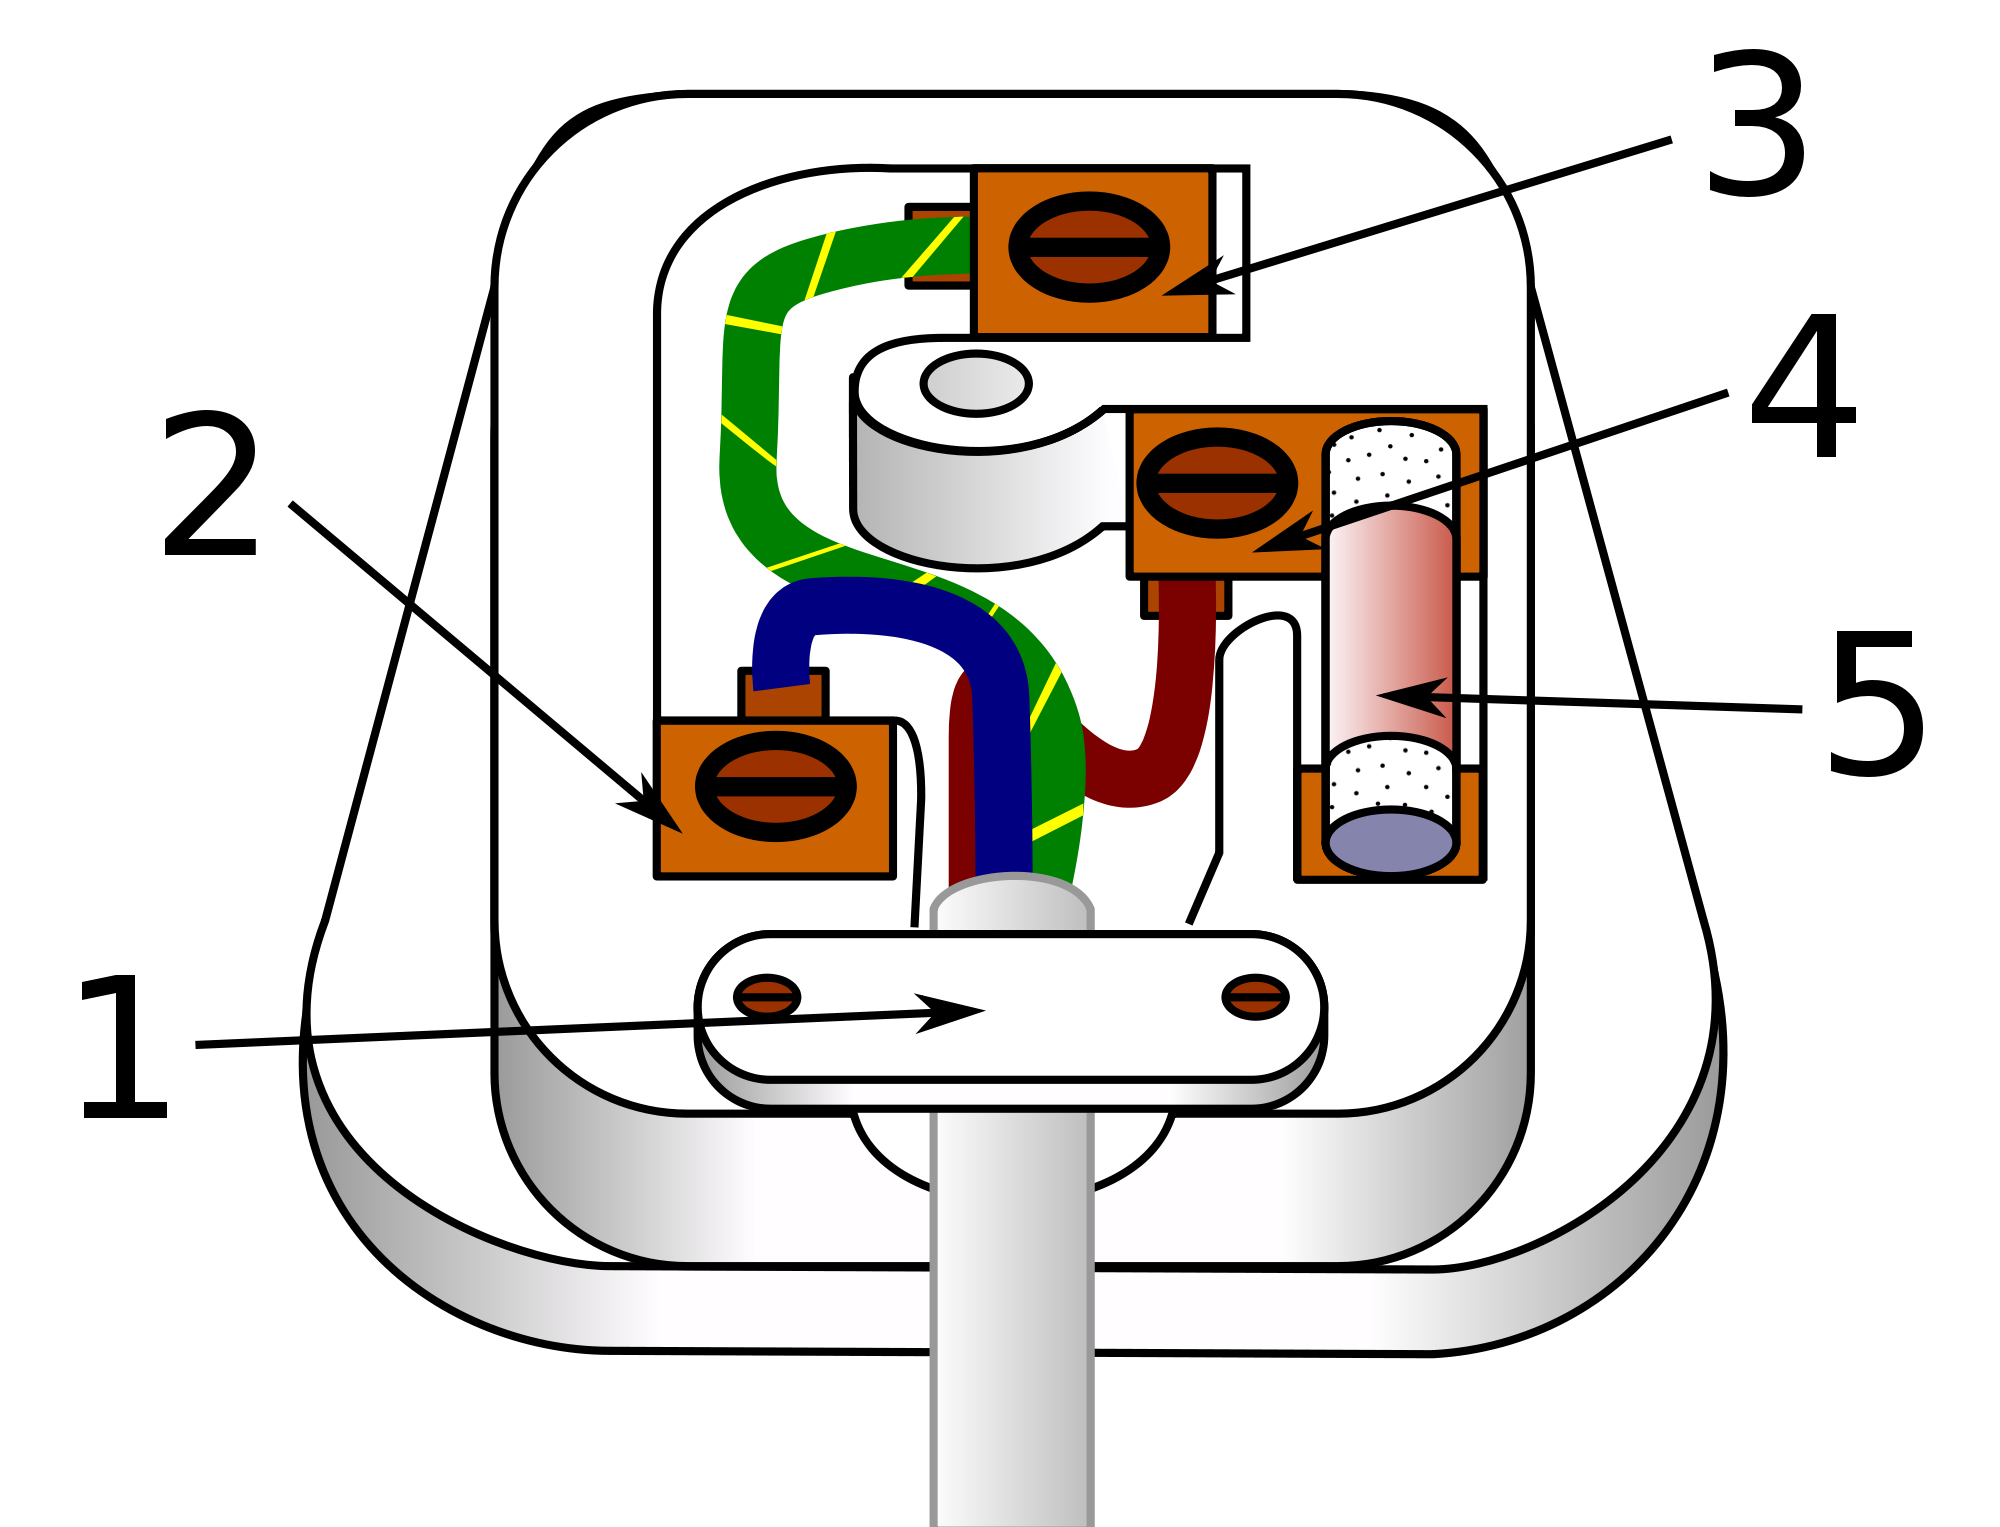 Astounding Electric Plug Diagrams Wiring Diagram Wiring Digital Resources Spoatbouhousnl